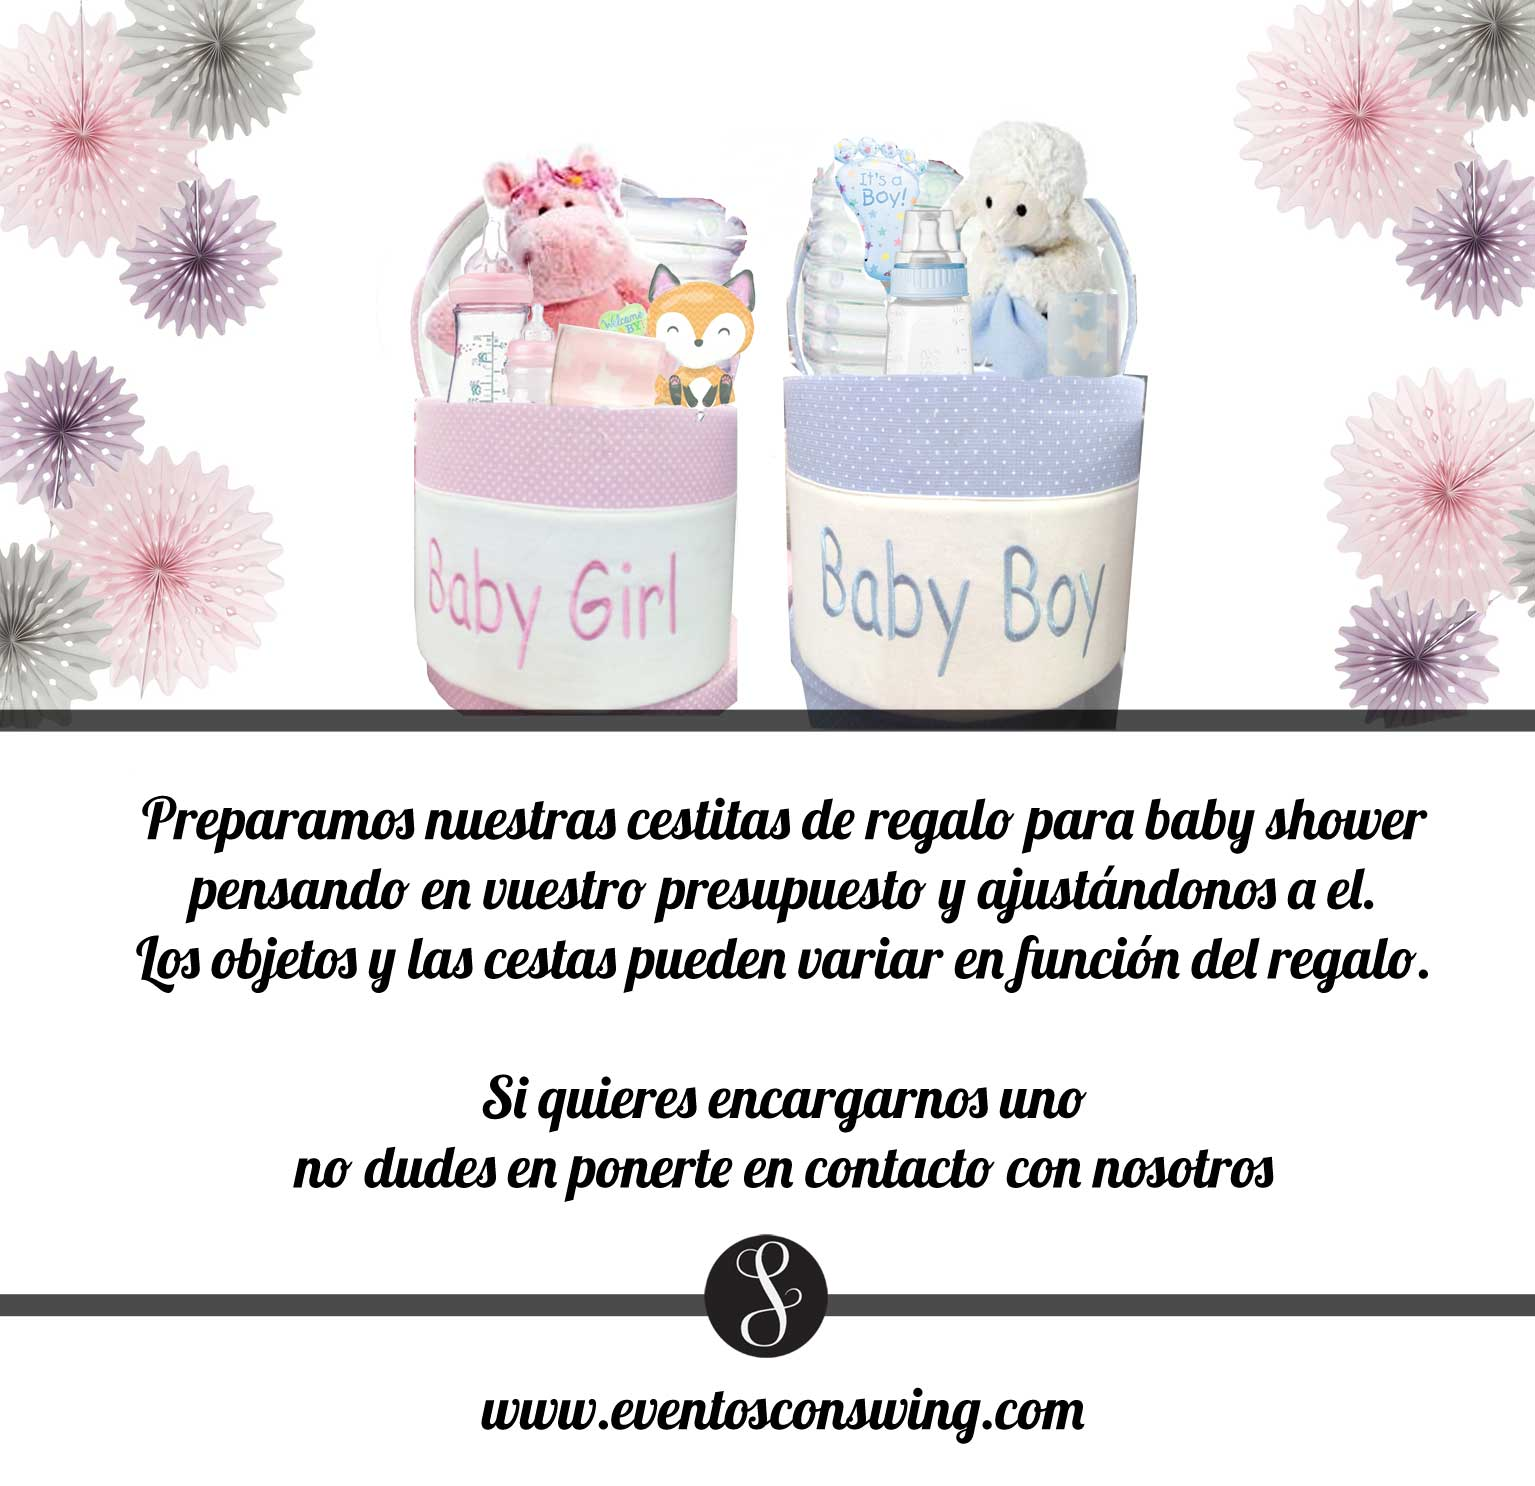 cestitas babyshower_eventos con swing